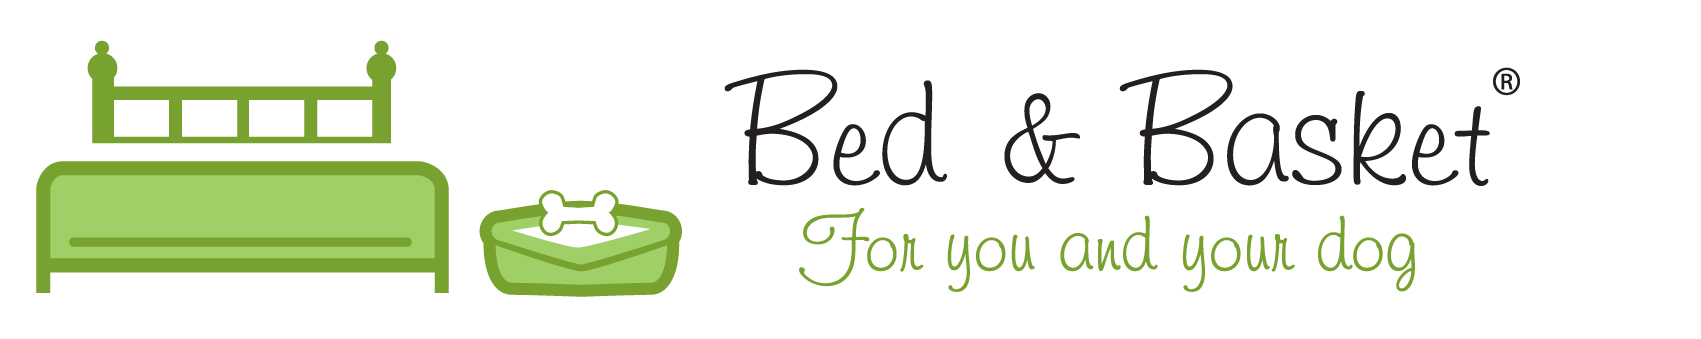 Bed and Basket logo